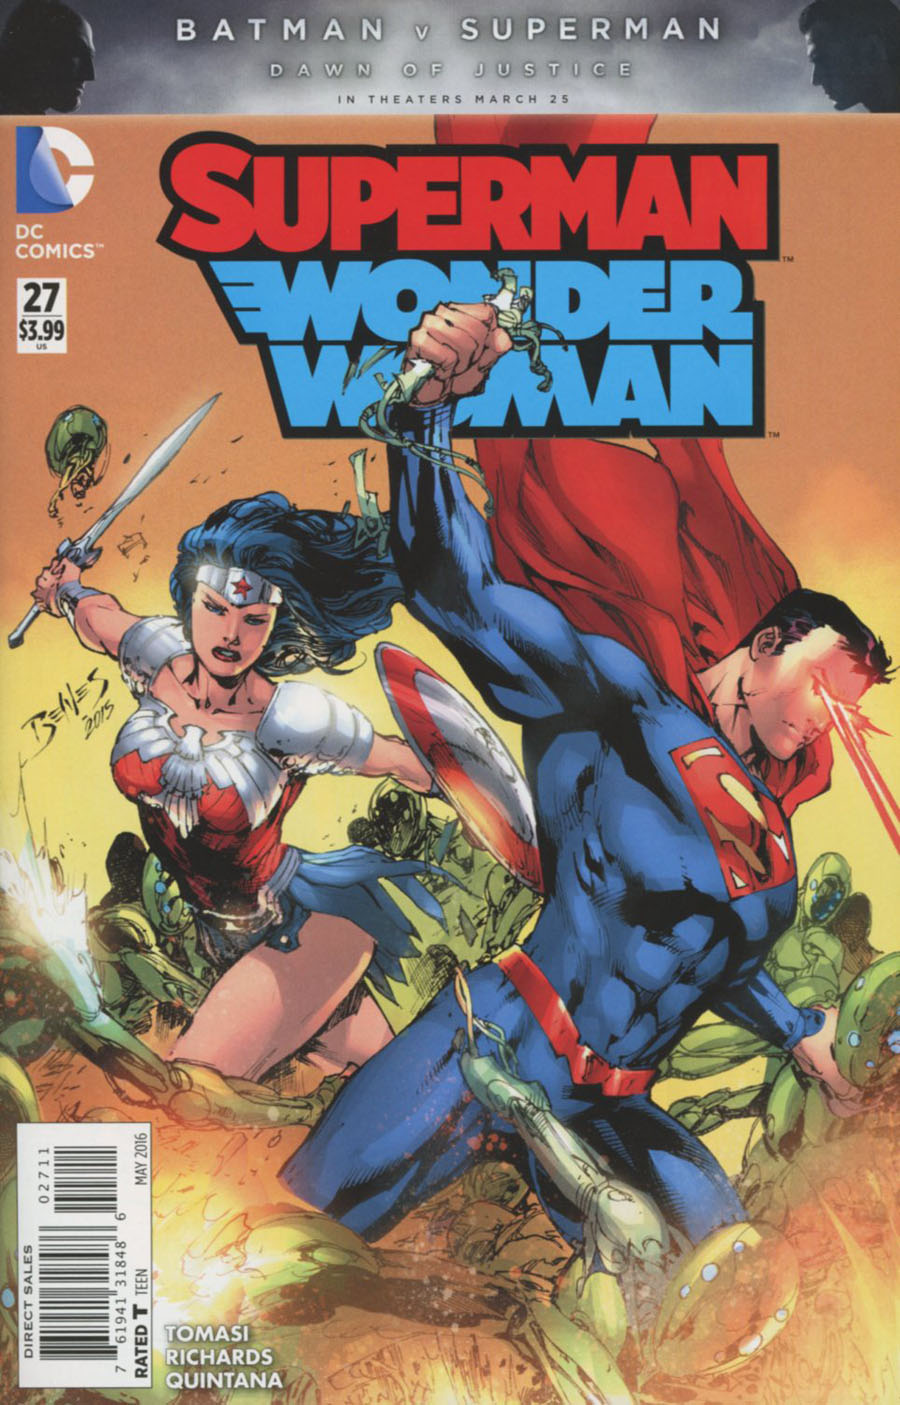 Superman/Wonder Woman #27